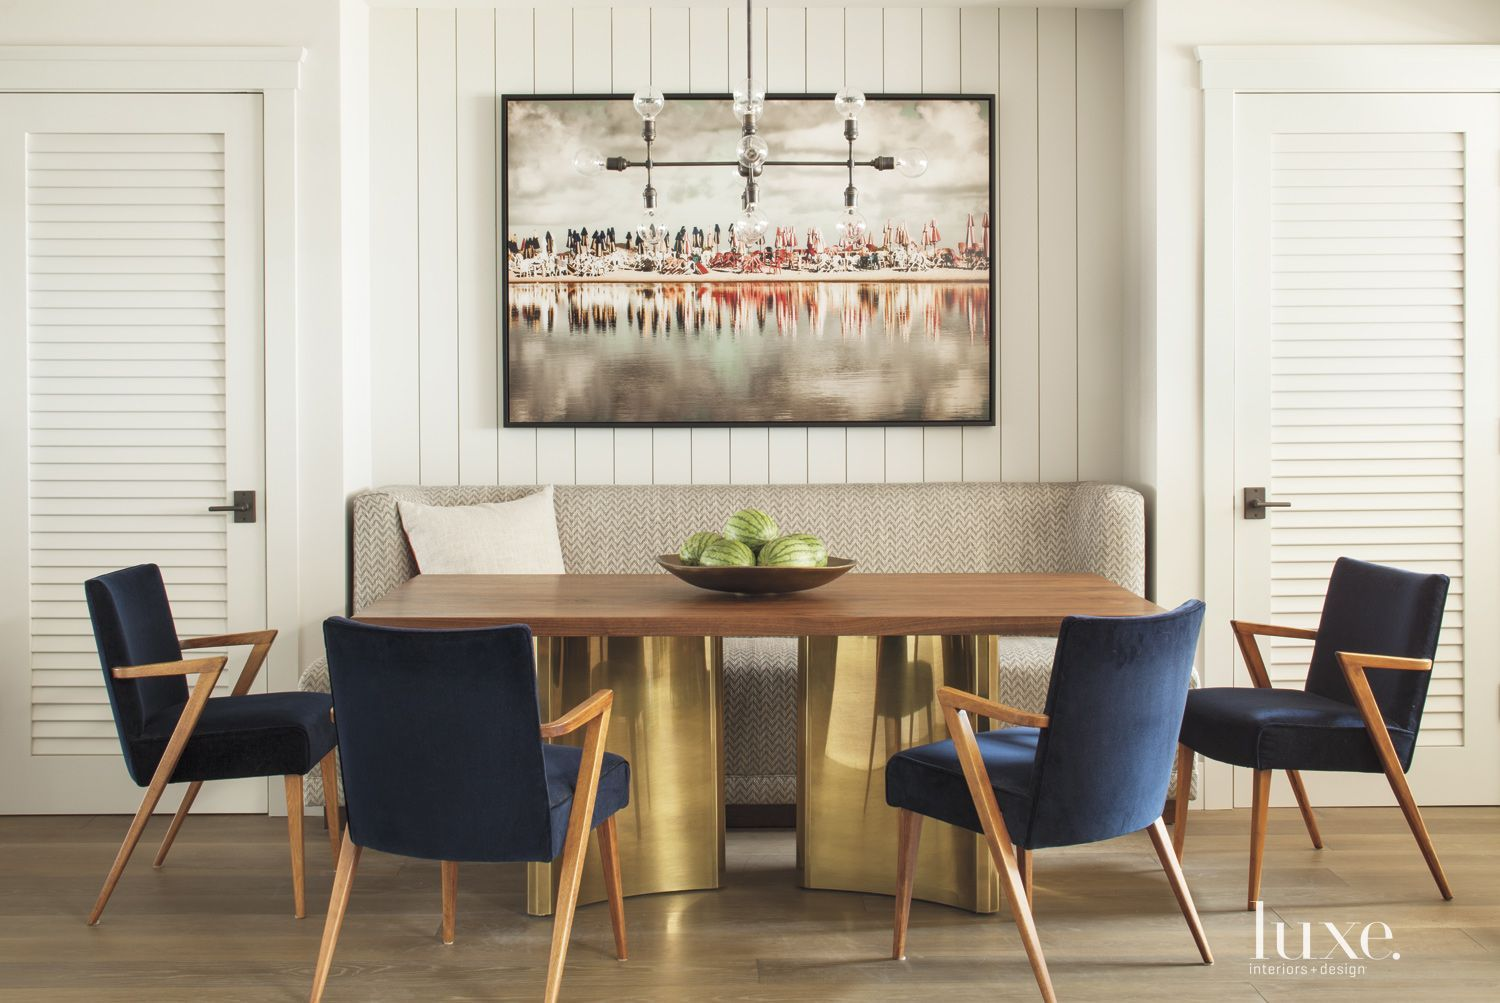 Massive brass base of the dining table brings a modern touch to this mid-century dining room furniture set.